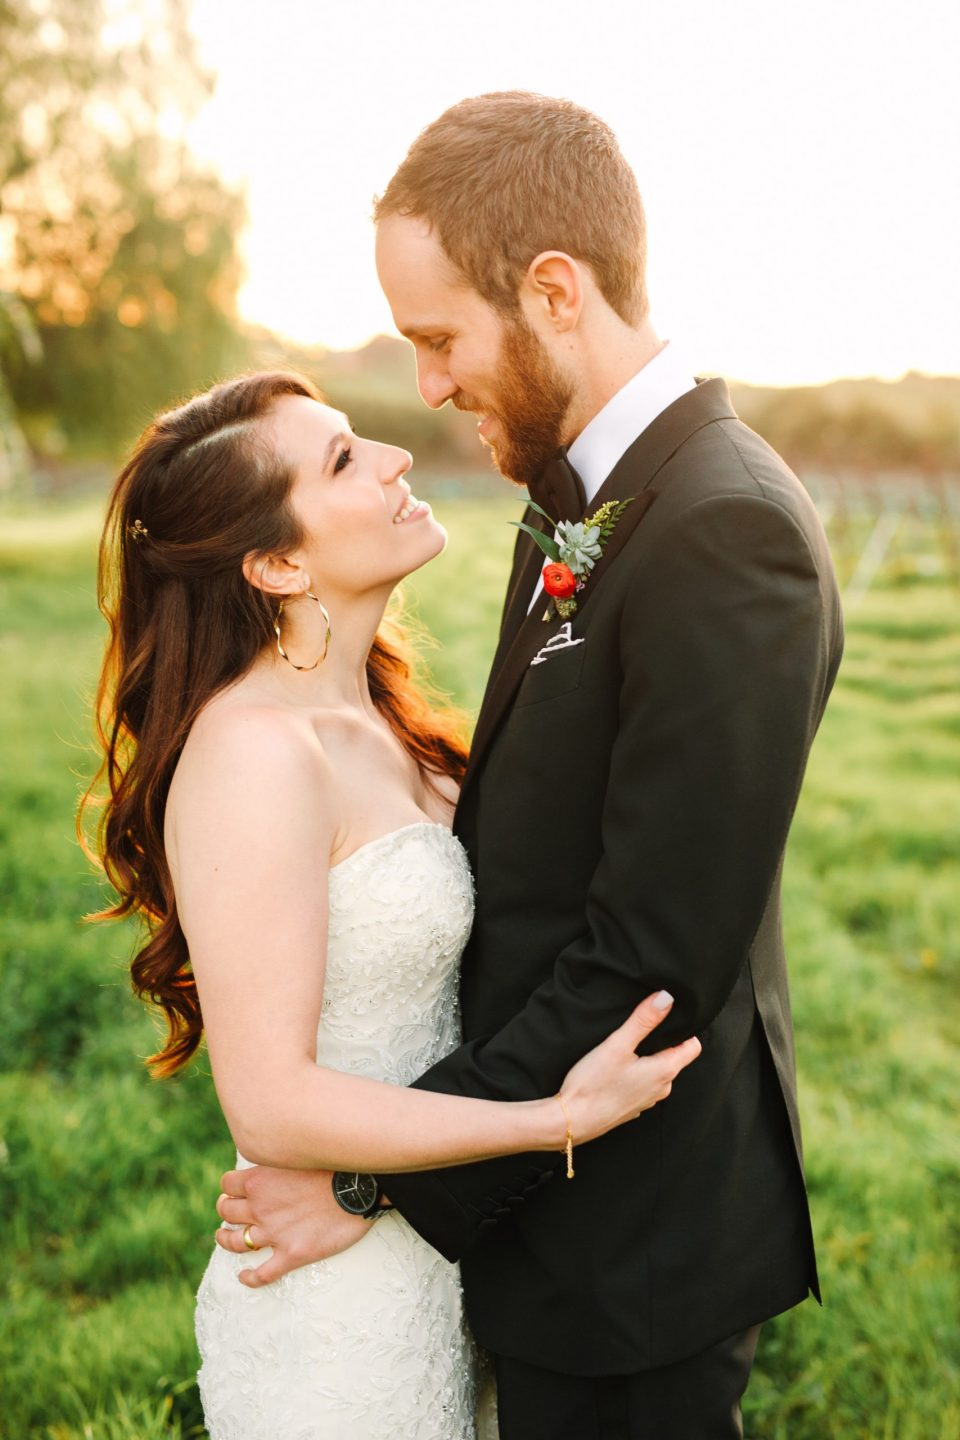 Golden hour wedding portrait by Mary Costa Photography